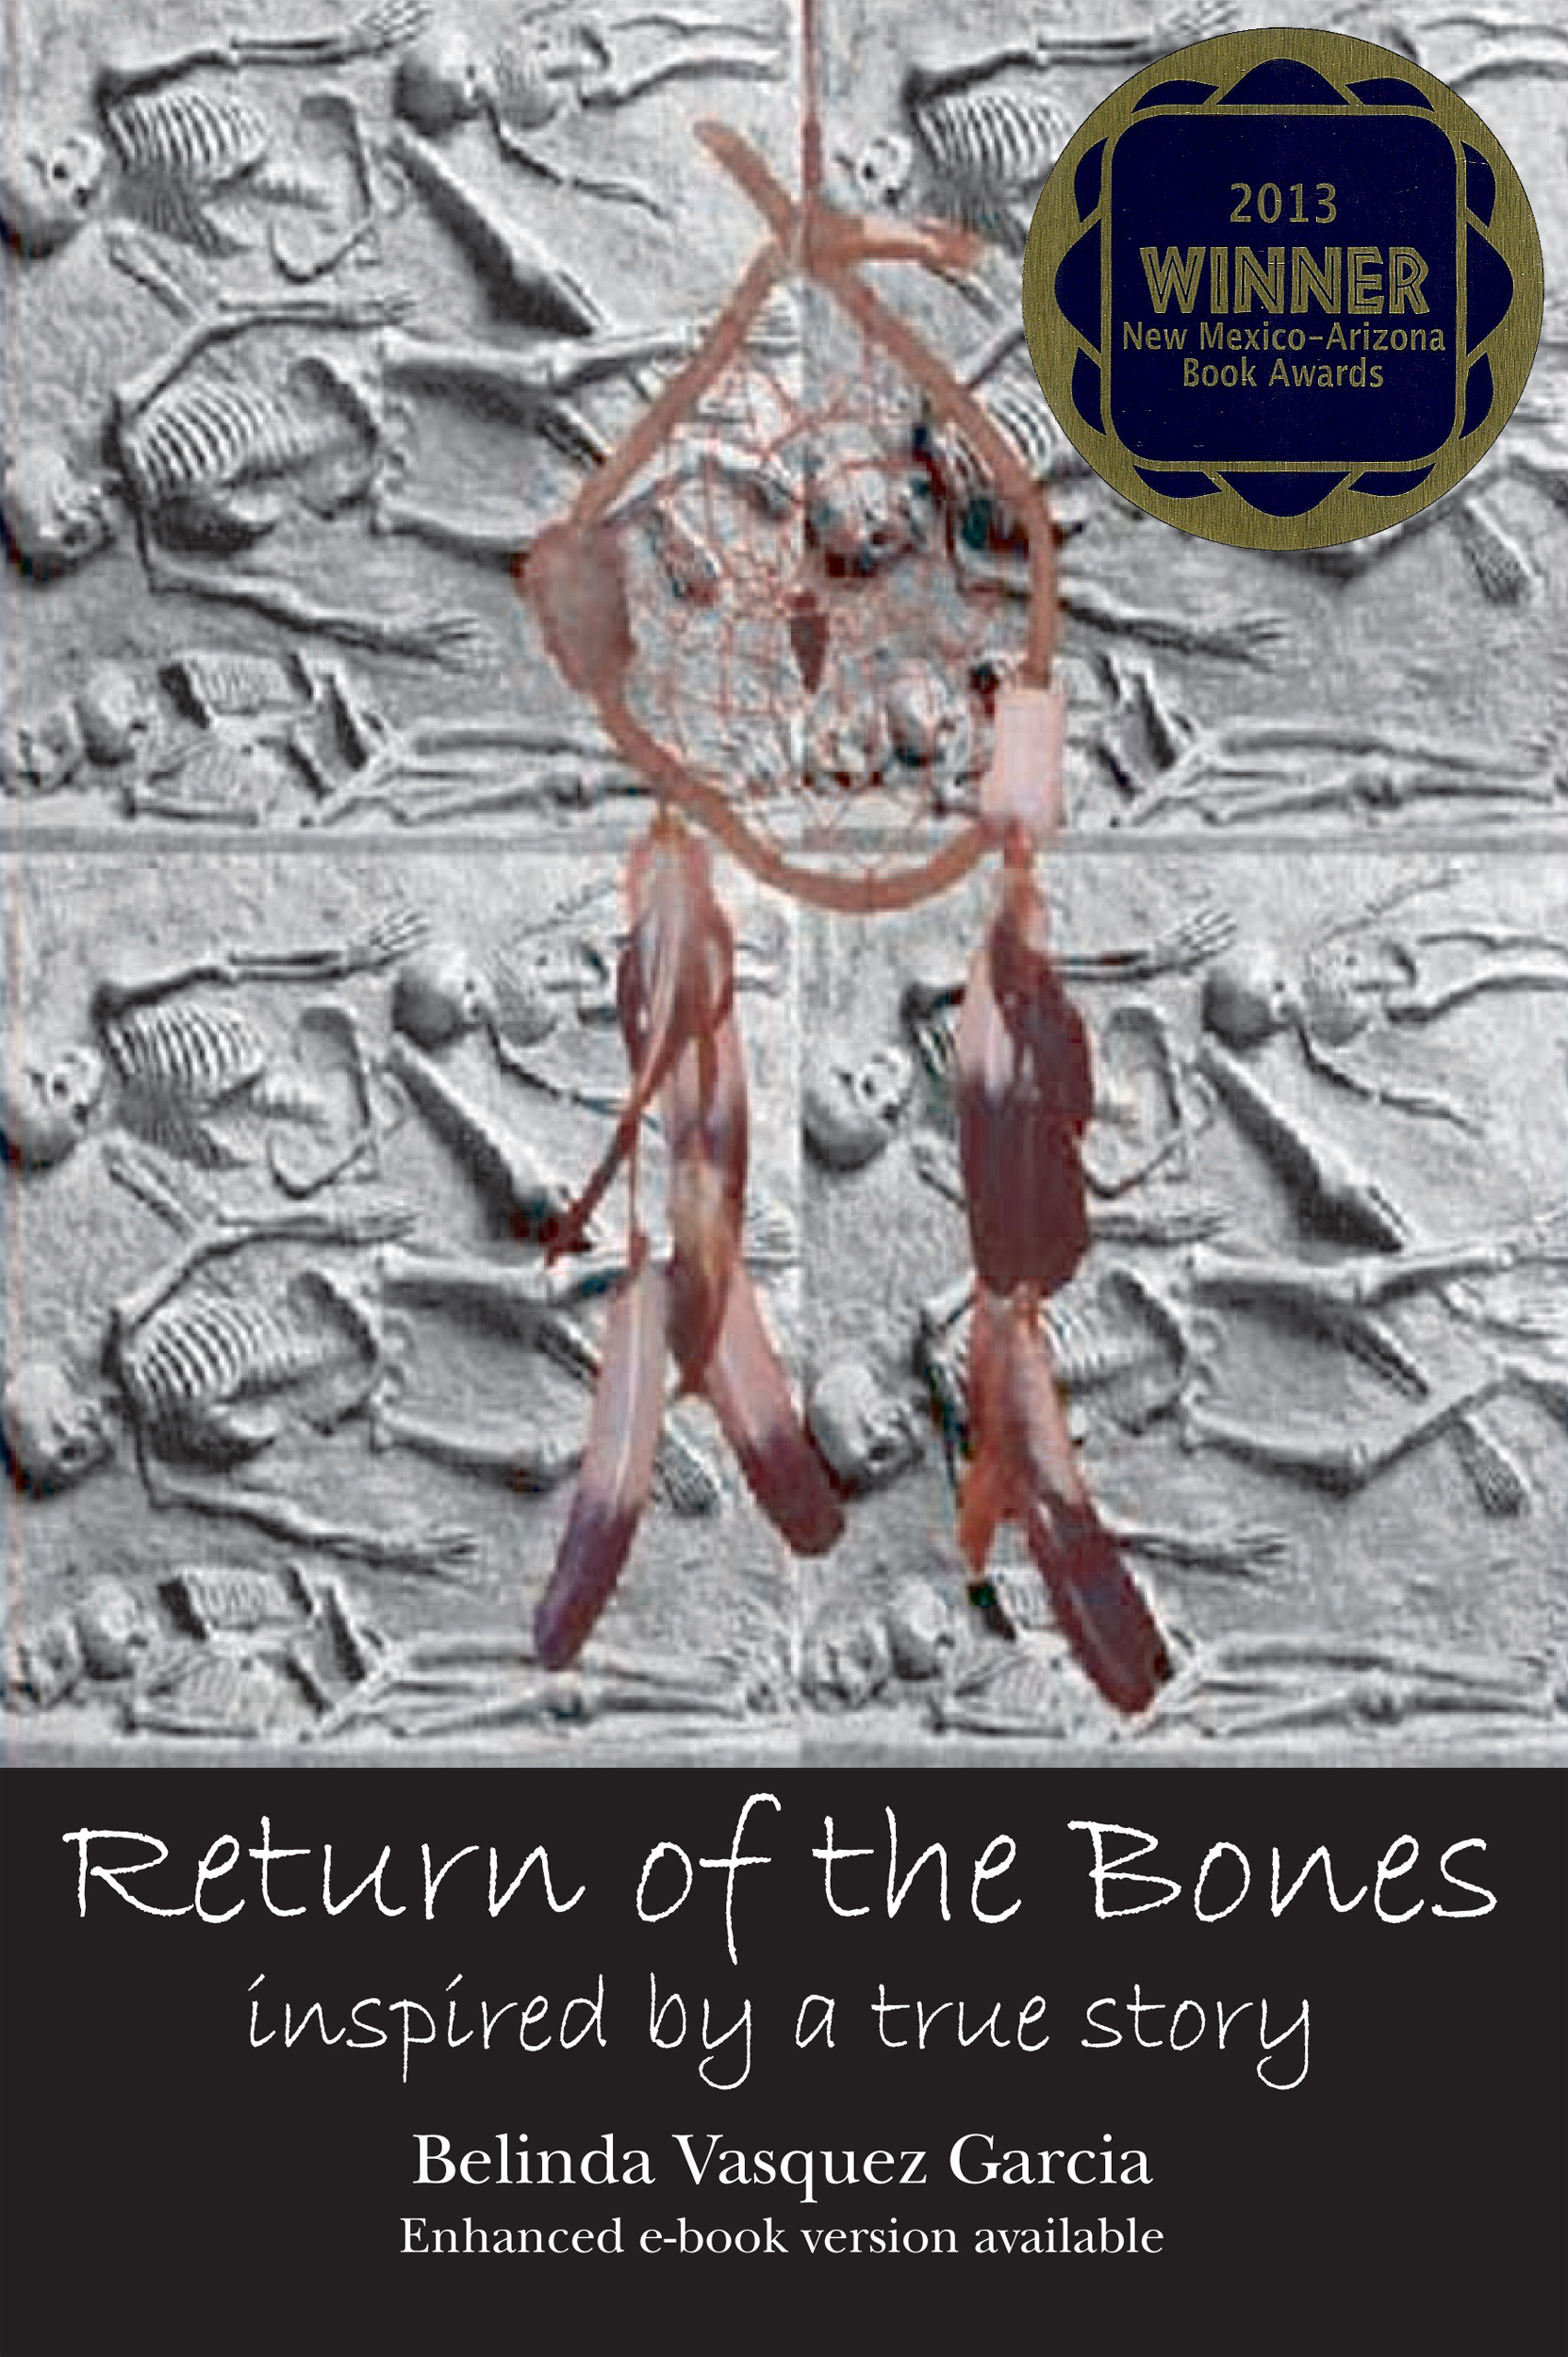 Return of the Bones, Inspired by a TRUE STORY